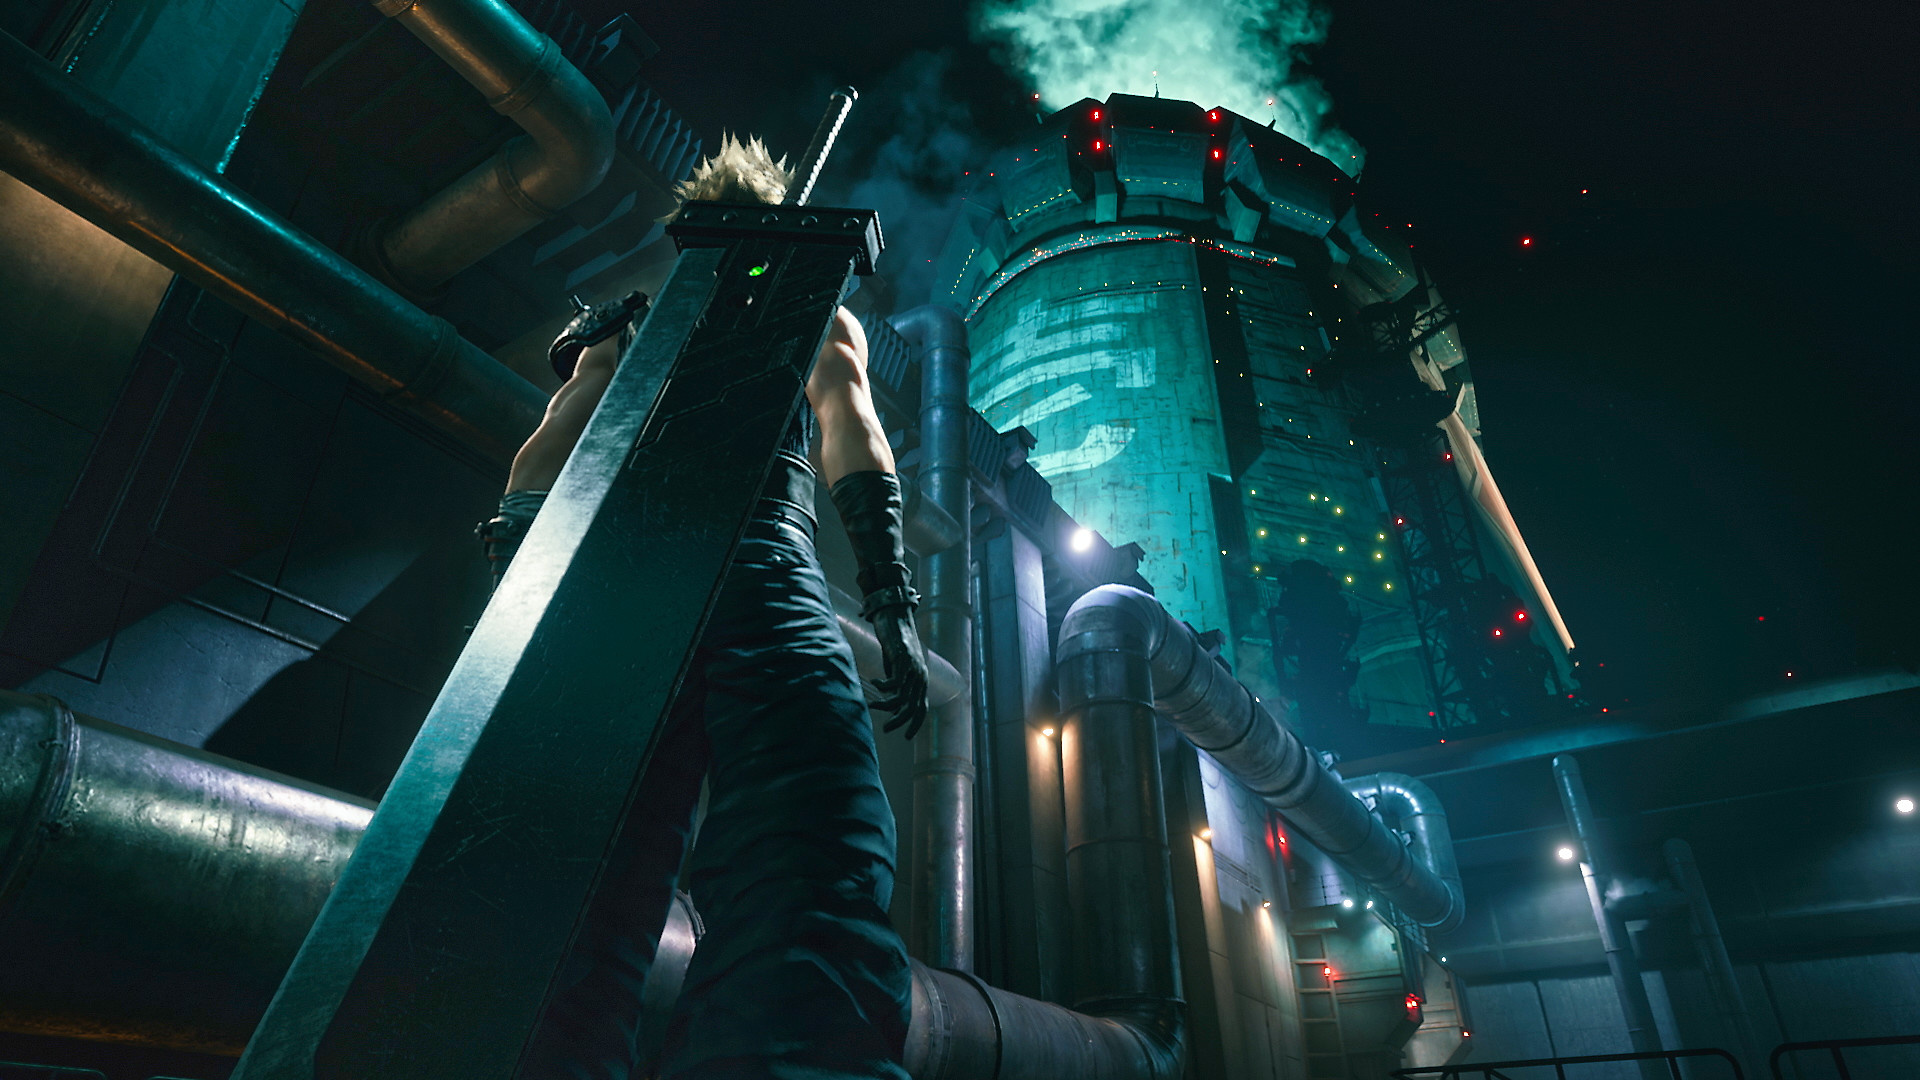 Final Fantasy VII Remake Has Classic Turn Based Mode (FF News 9/13/19 to 9/20/19)